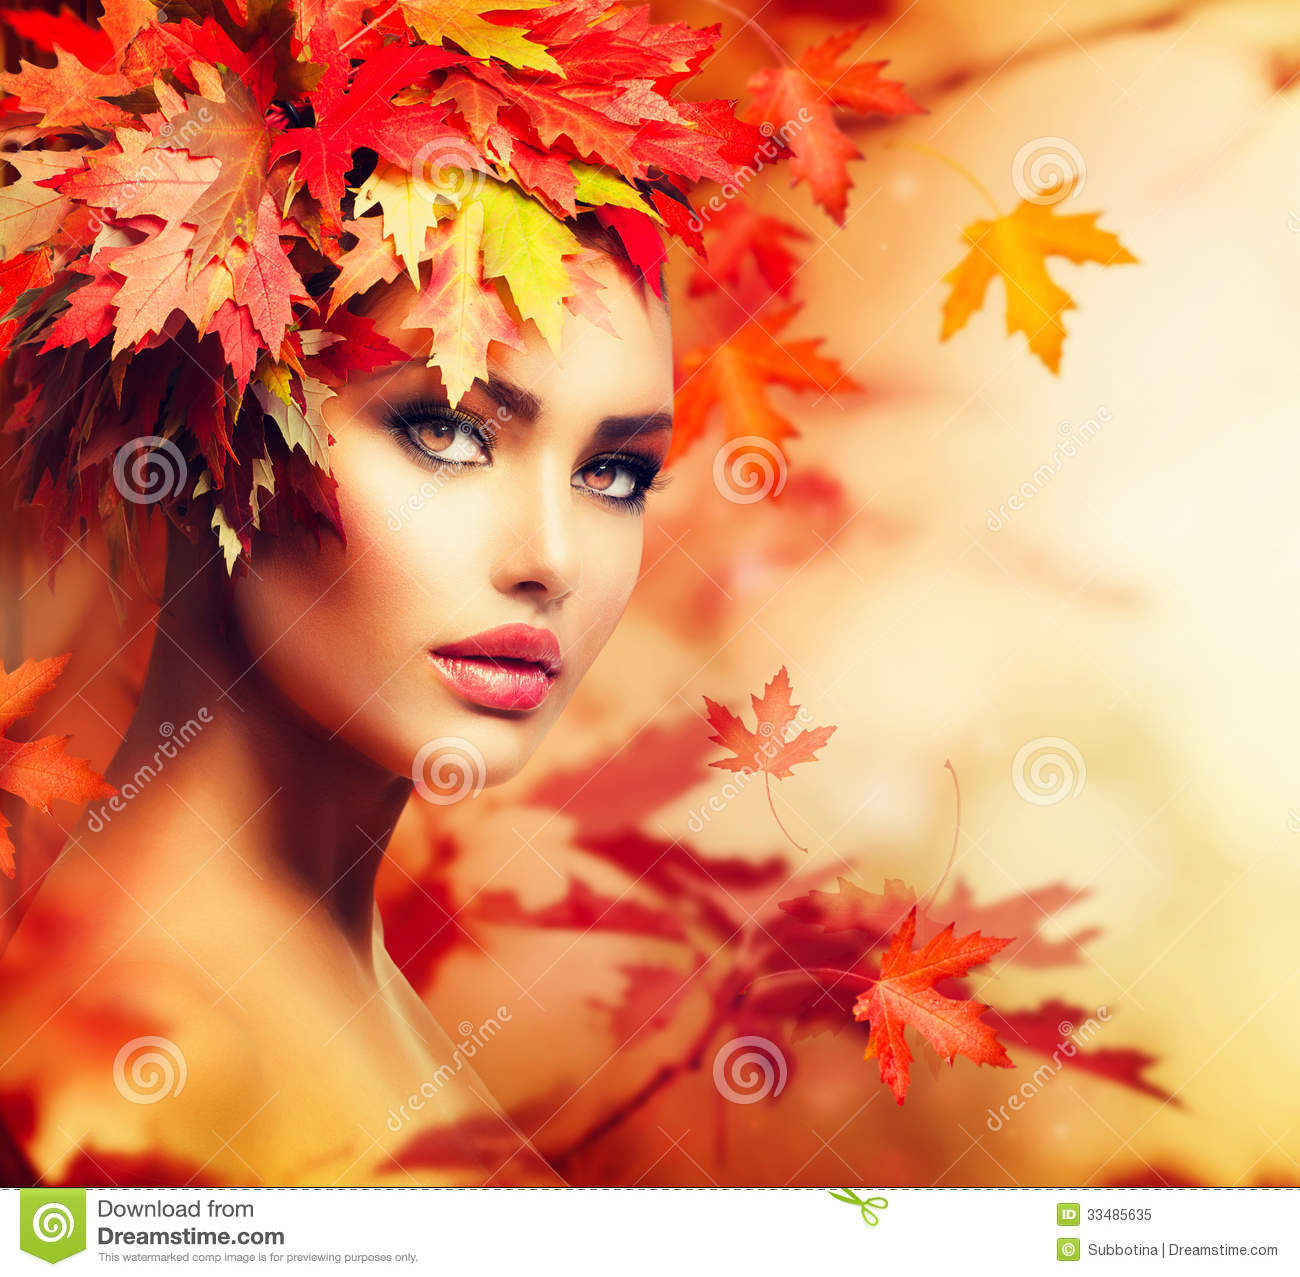 Autumn Woman Portrait Stock Image. Image Of Leaves, Look